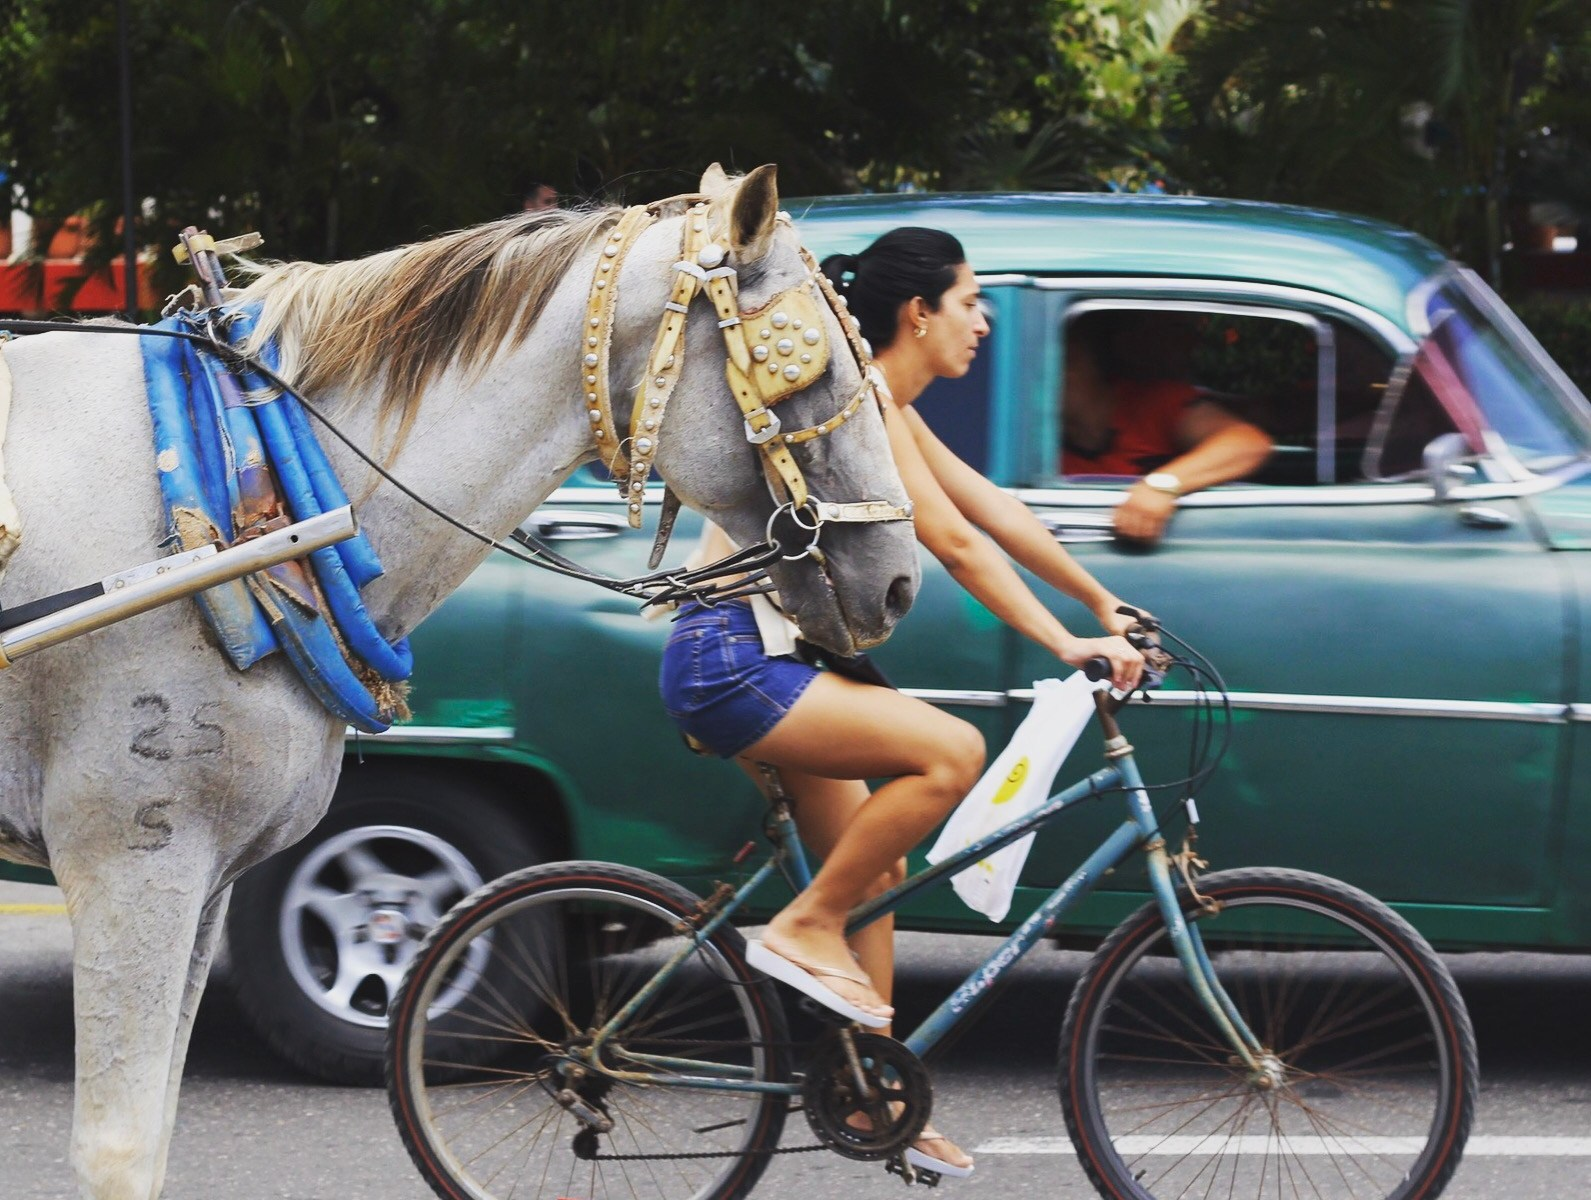 Photo of a cyclist, a horse, and a vintage car driving by on the street